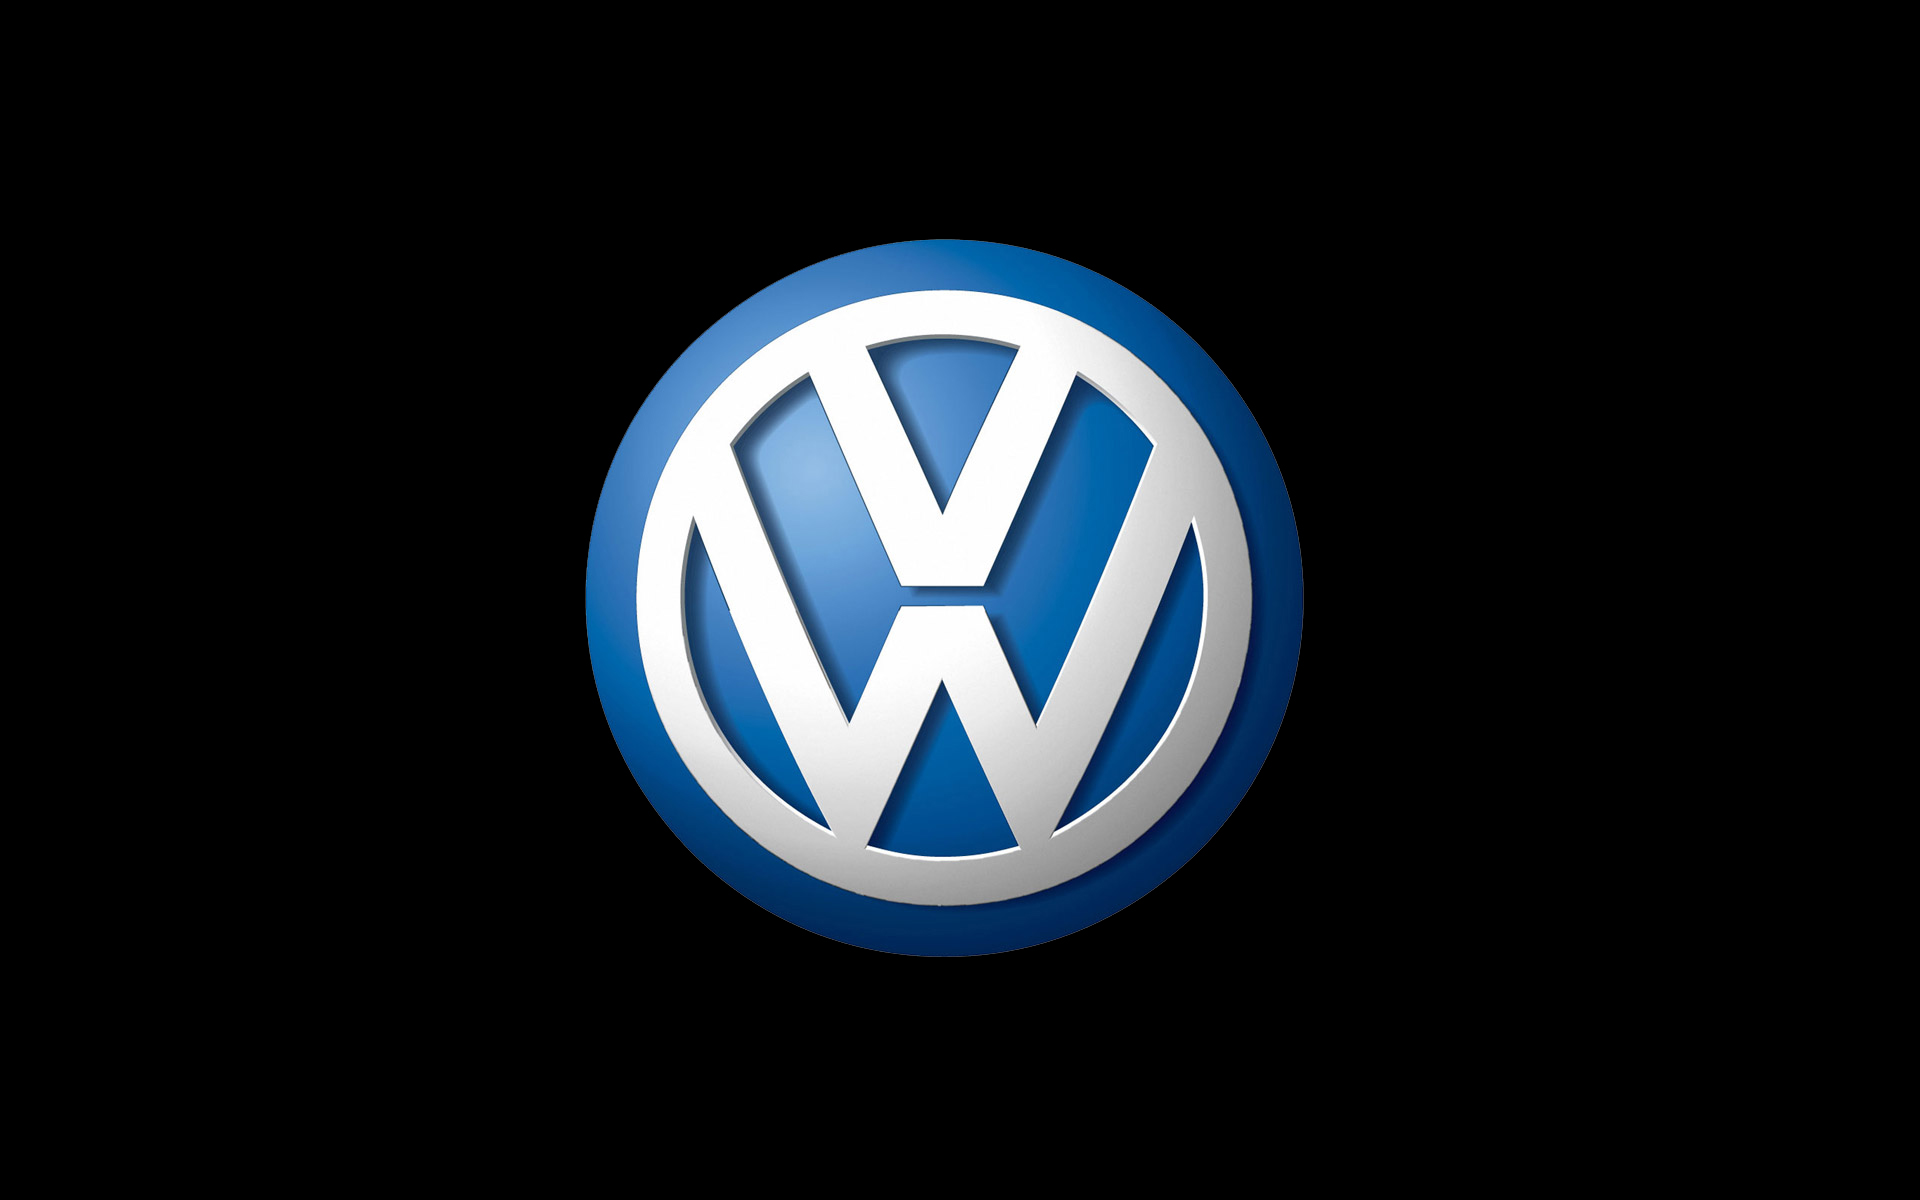 Volkswagen Vehicles Wallpaper Photos HD